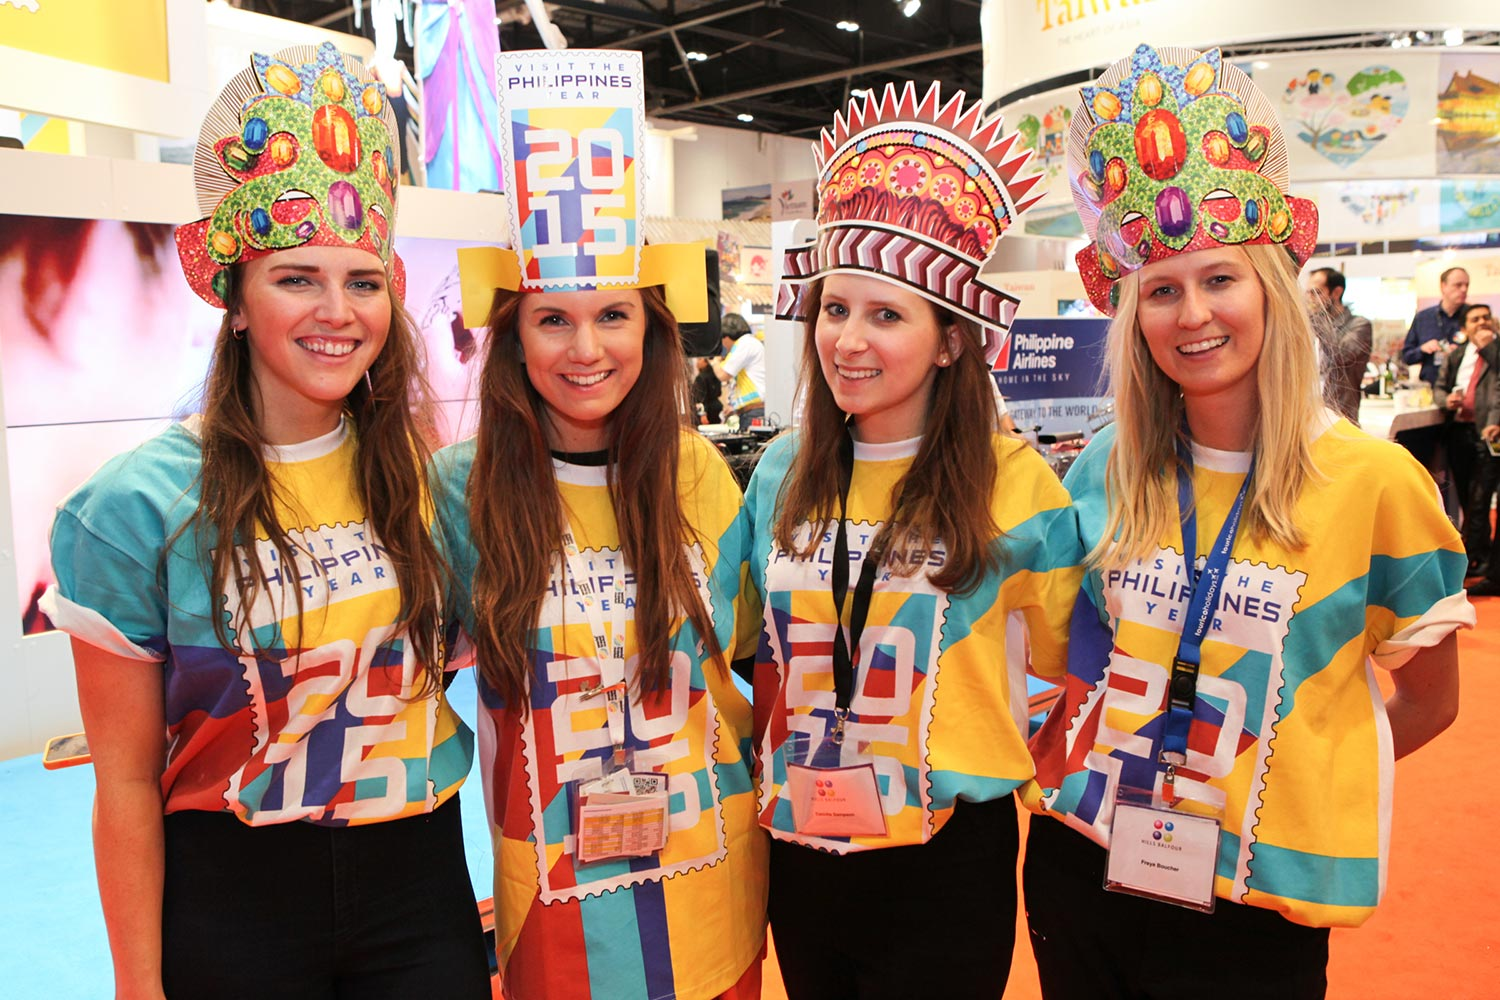 Women's mentoring introduced to WTM